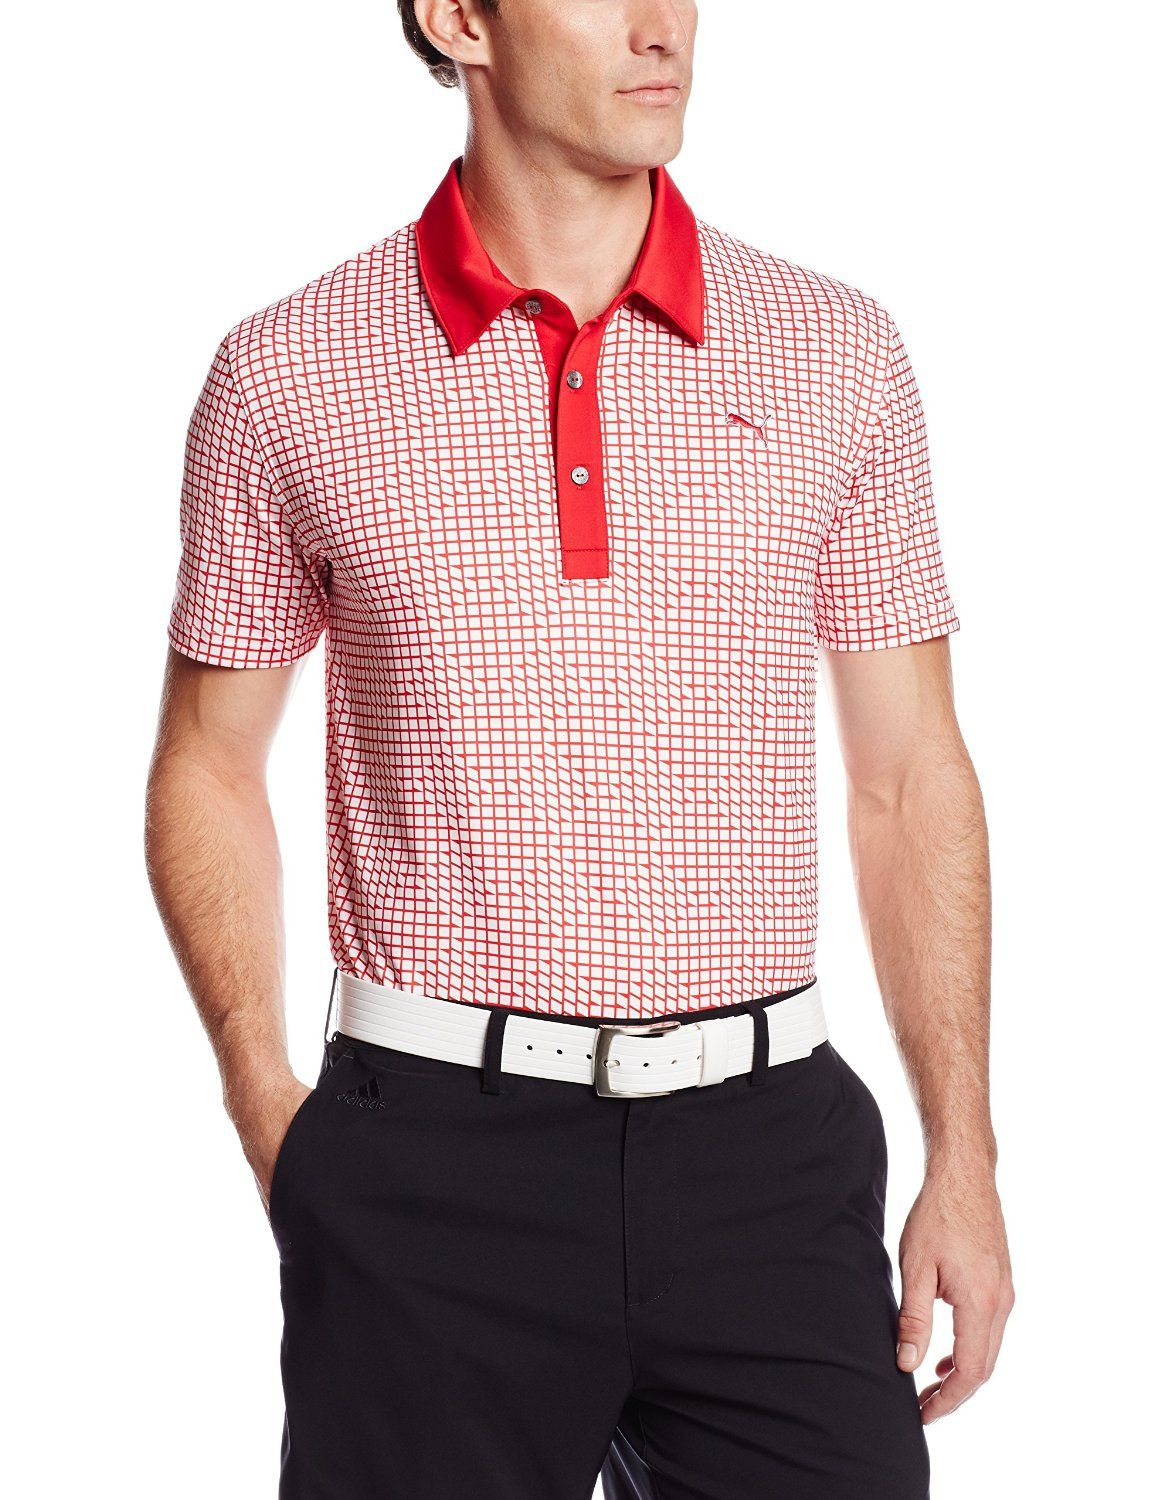 Made from polyester and spandex this mens NA pattern print golf polo shirt  by Puma offers UV protection UPF